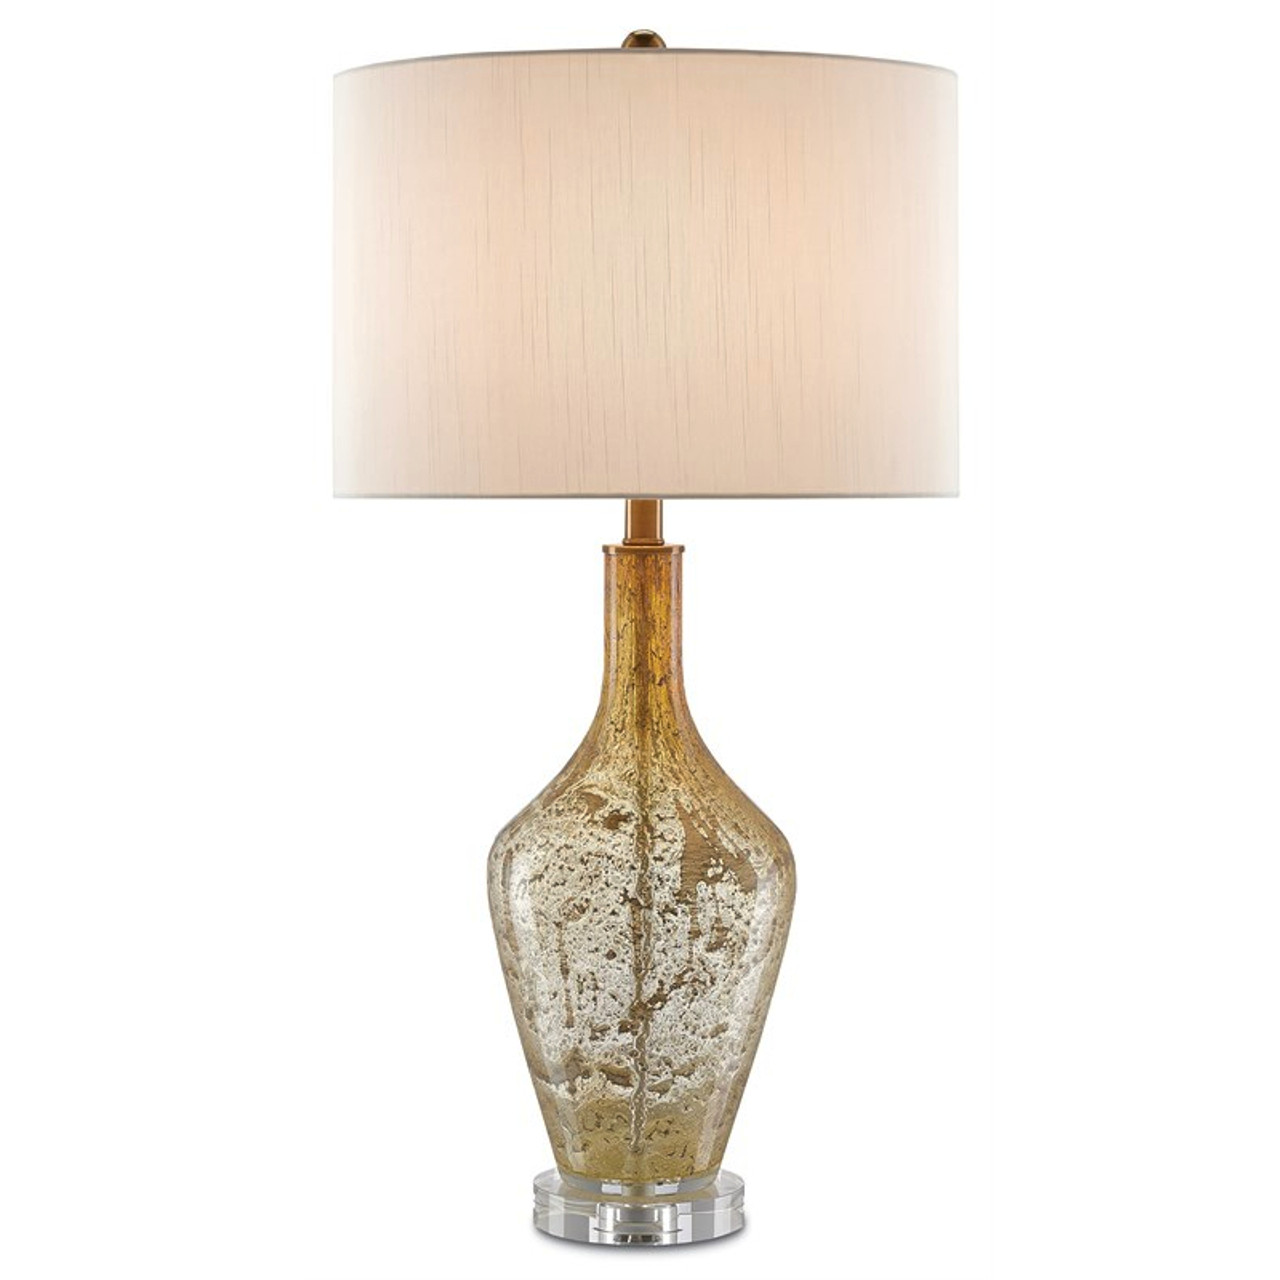 HABIB TABLE LAMP